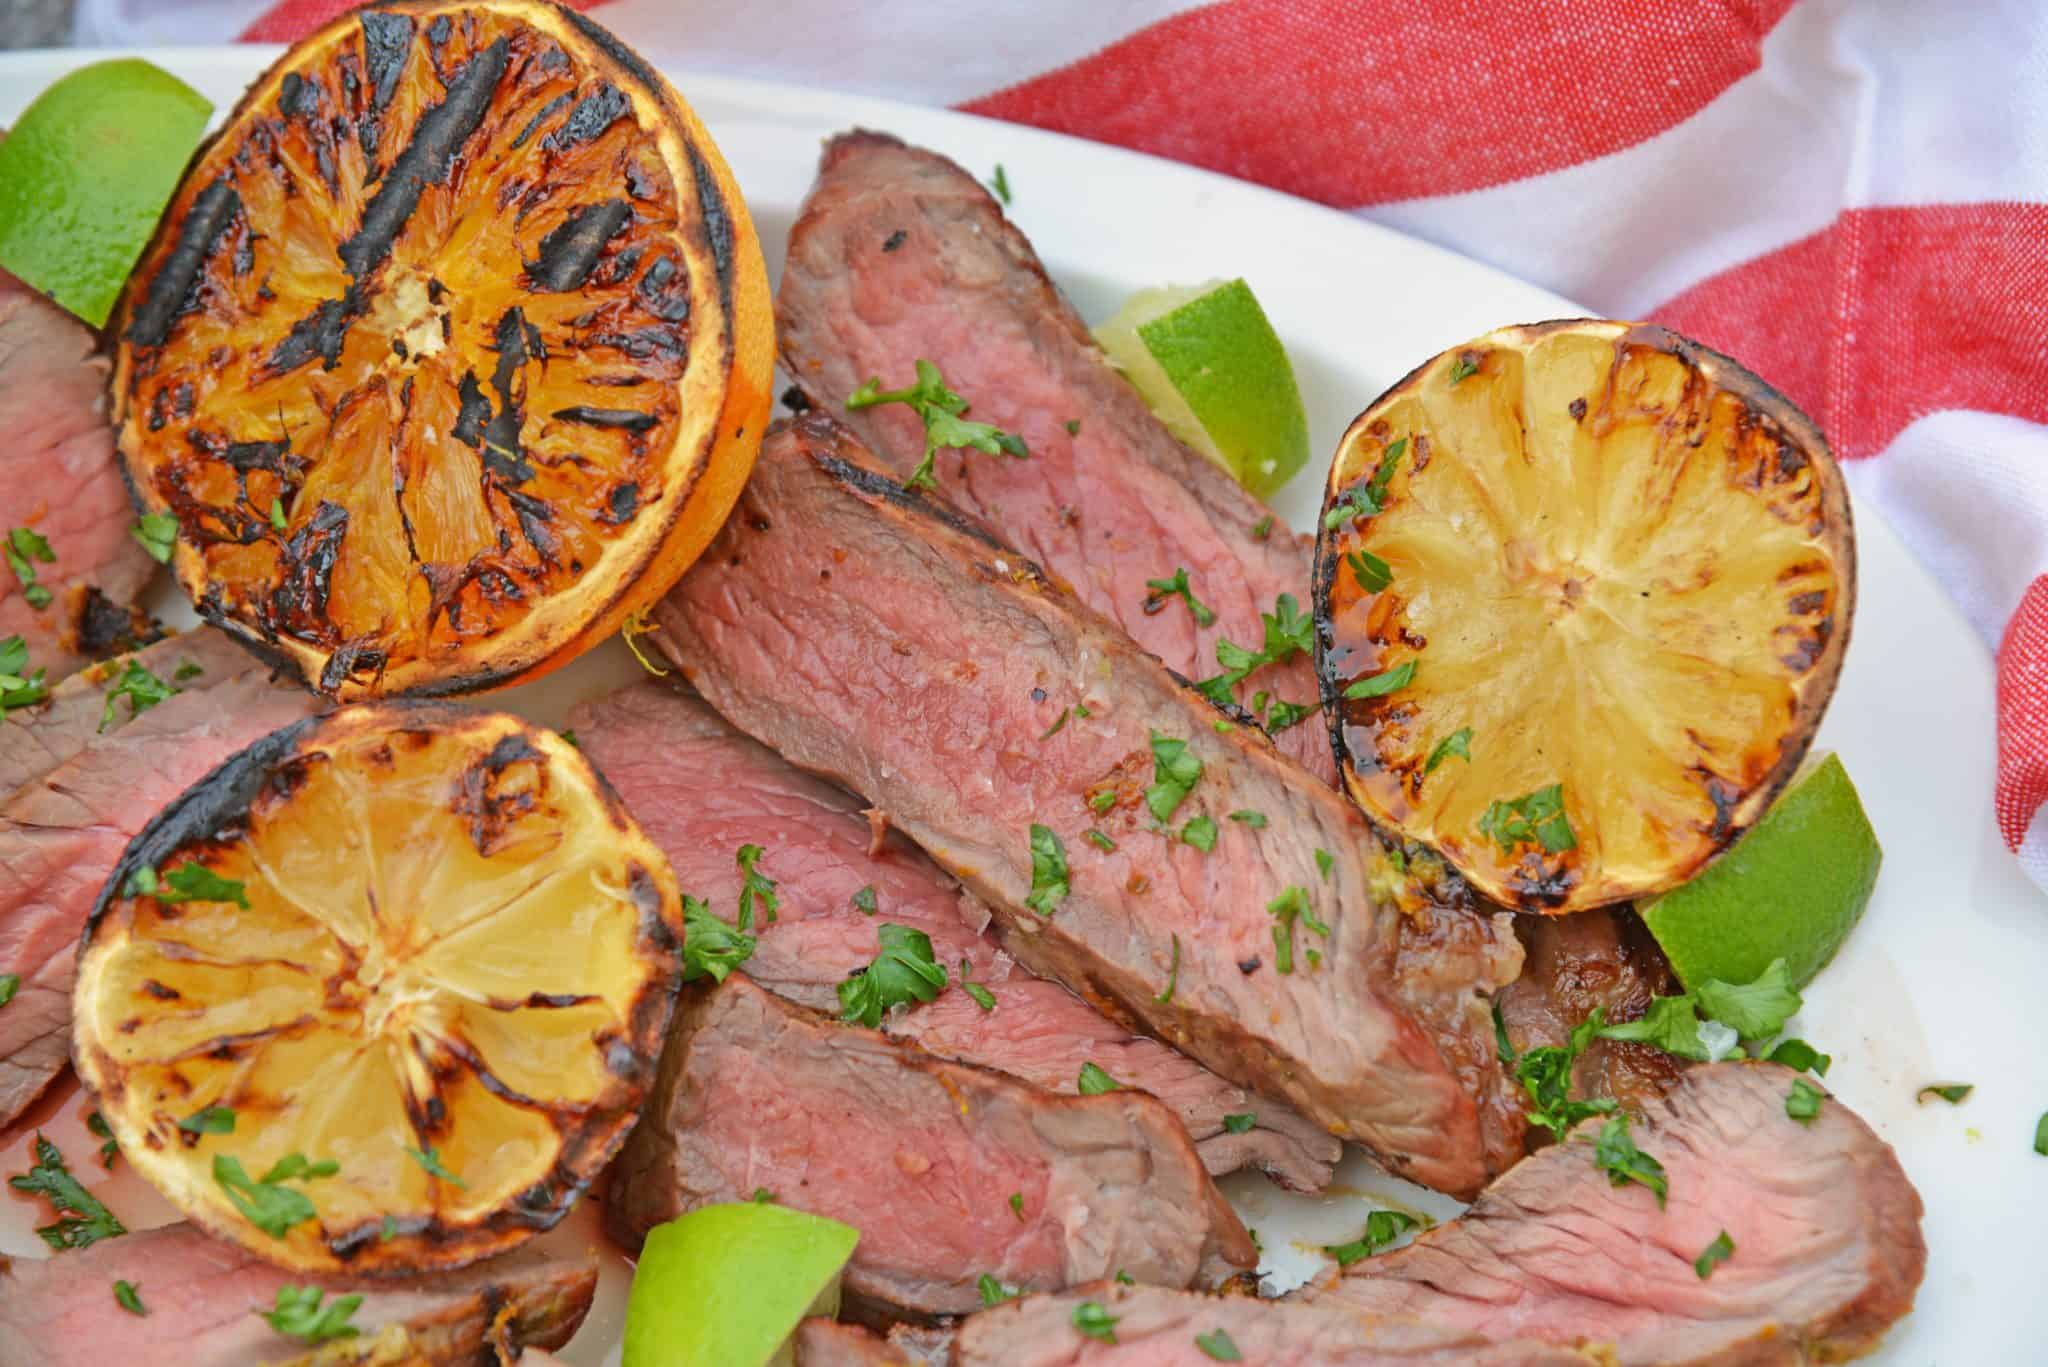 Citrus Steak Rub makes the best steak seasoning! With lemon, lime and orange zests, this is a dry rub that you will use over and over again. #steakdryrub #steakseasoning #beststeakdryrub www.savoryexperiments.com